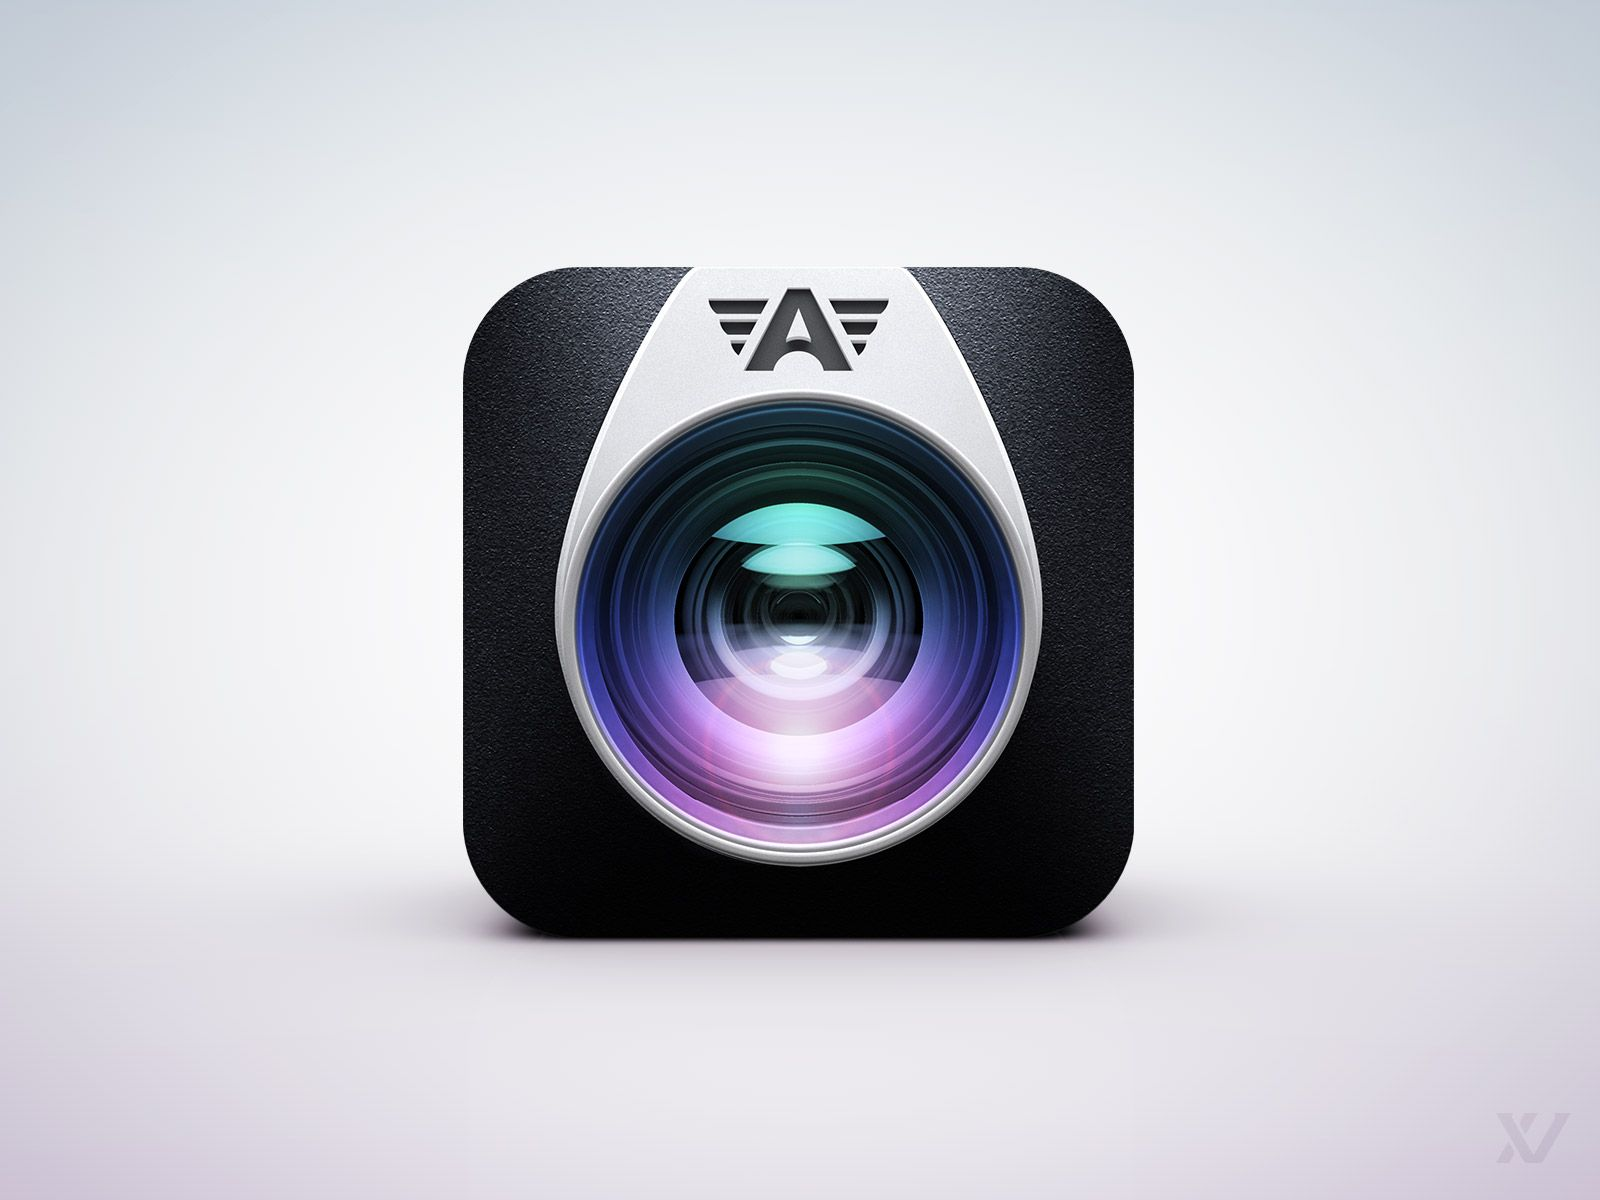 Dribbble - PREVIEW_-_Camera_Awesome_App_Icon_v2_by_Vilen.jpg by Vilen